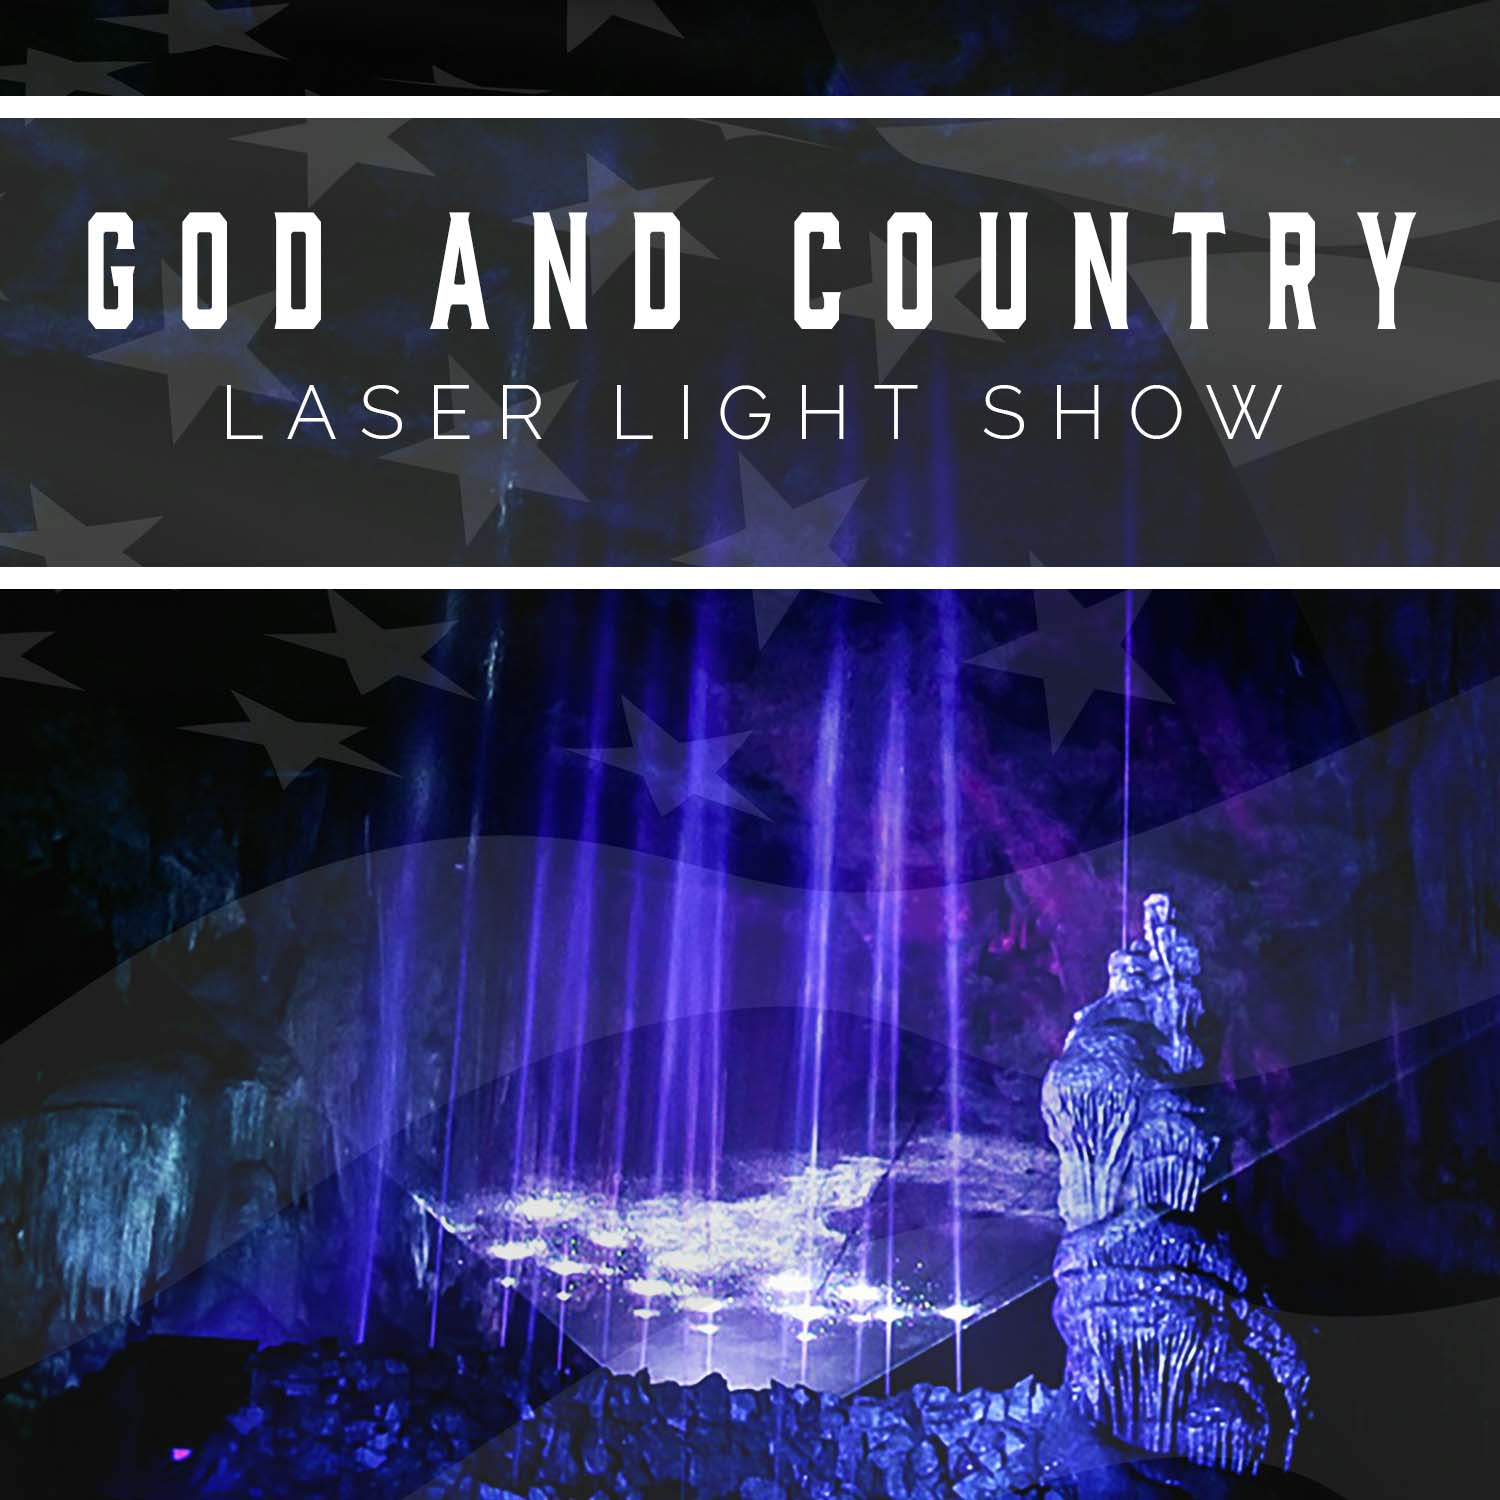 God and Country Laser Light Show Graphic.jpg